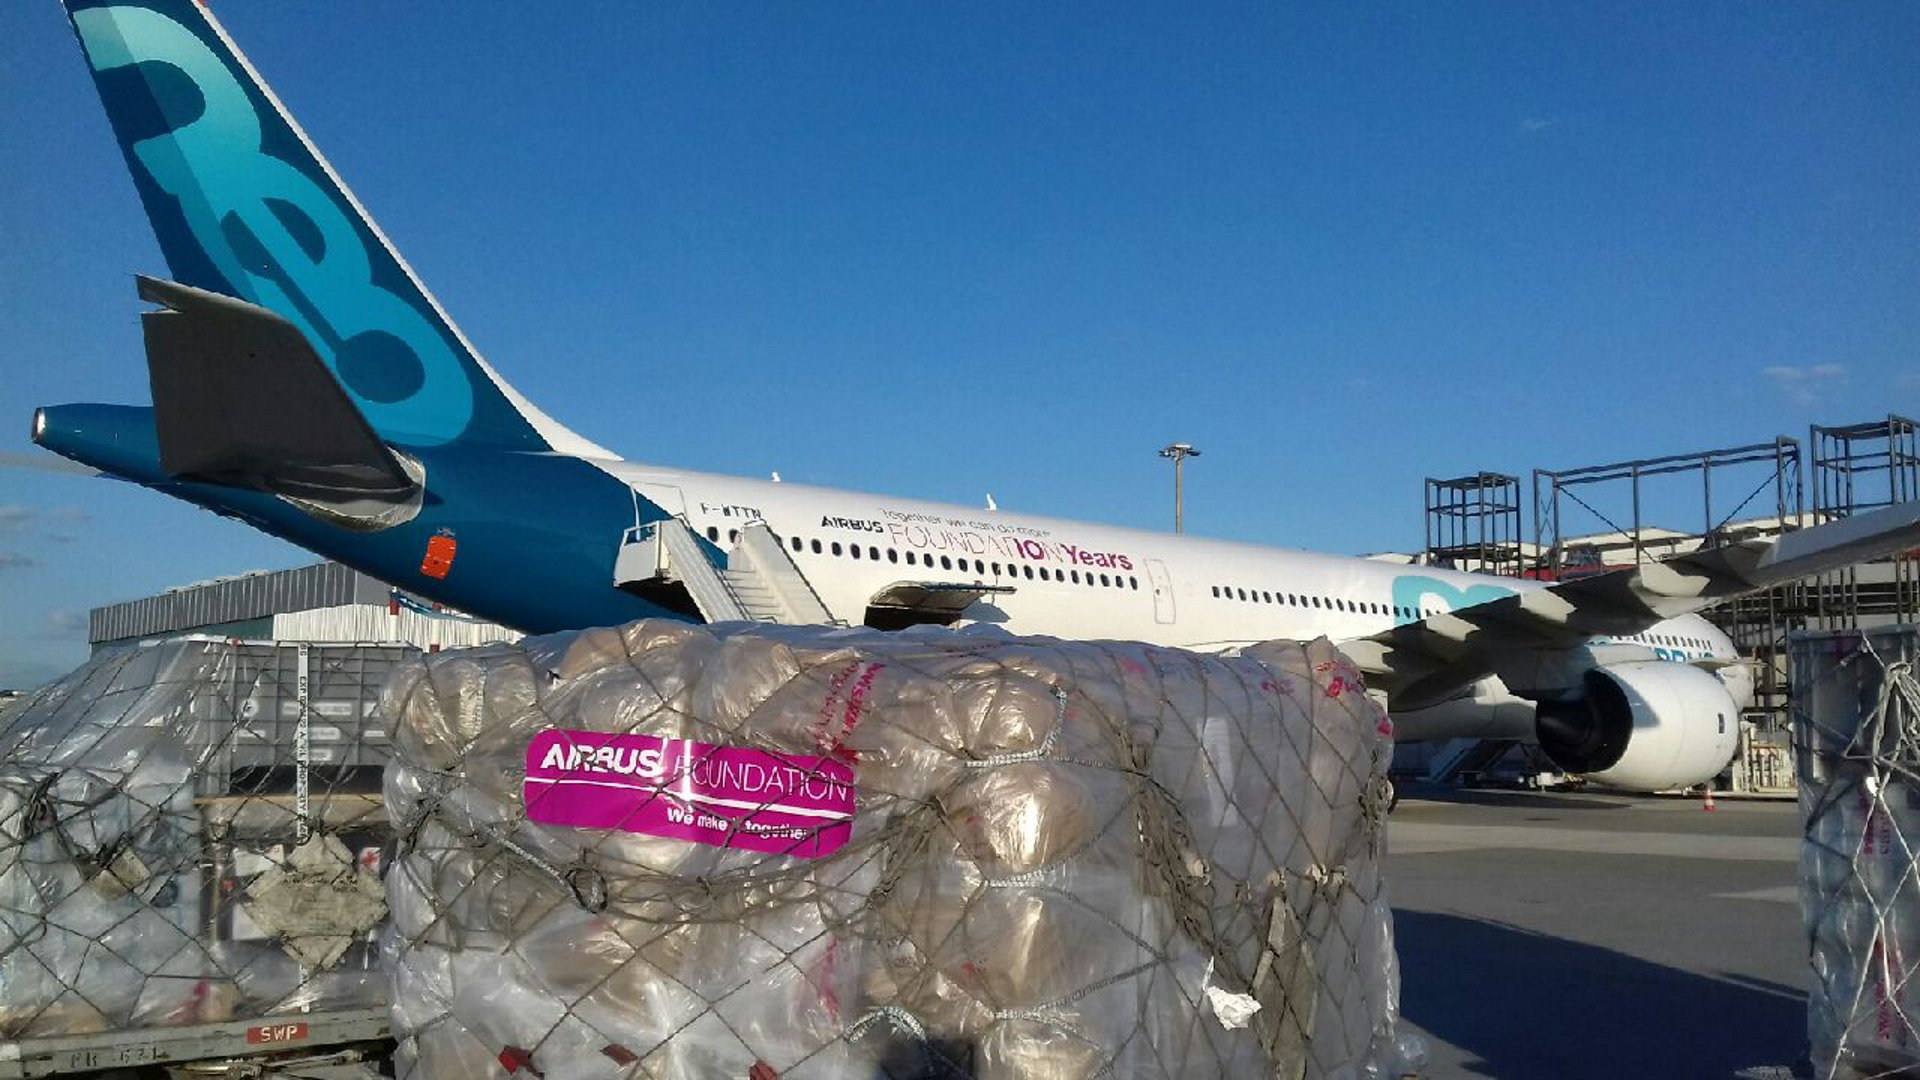 Loading of relief goods for victims of cyclone Idai on an Airbus A330neo test aircraft at Geneva Airport, Switzerland.